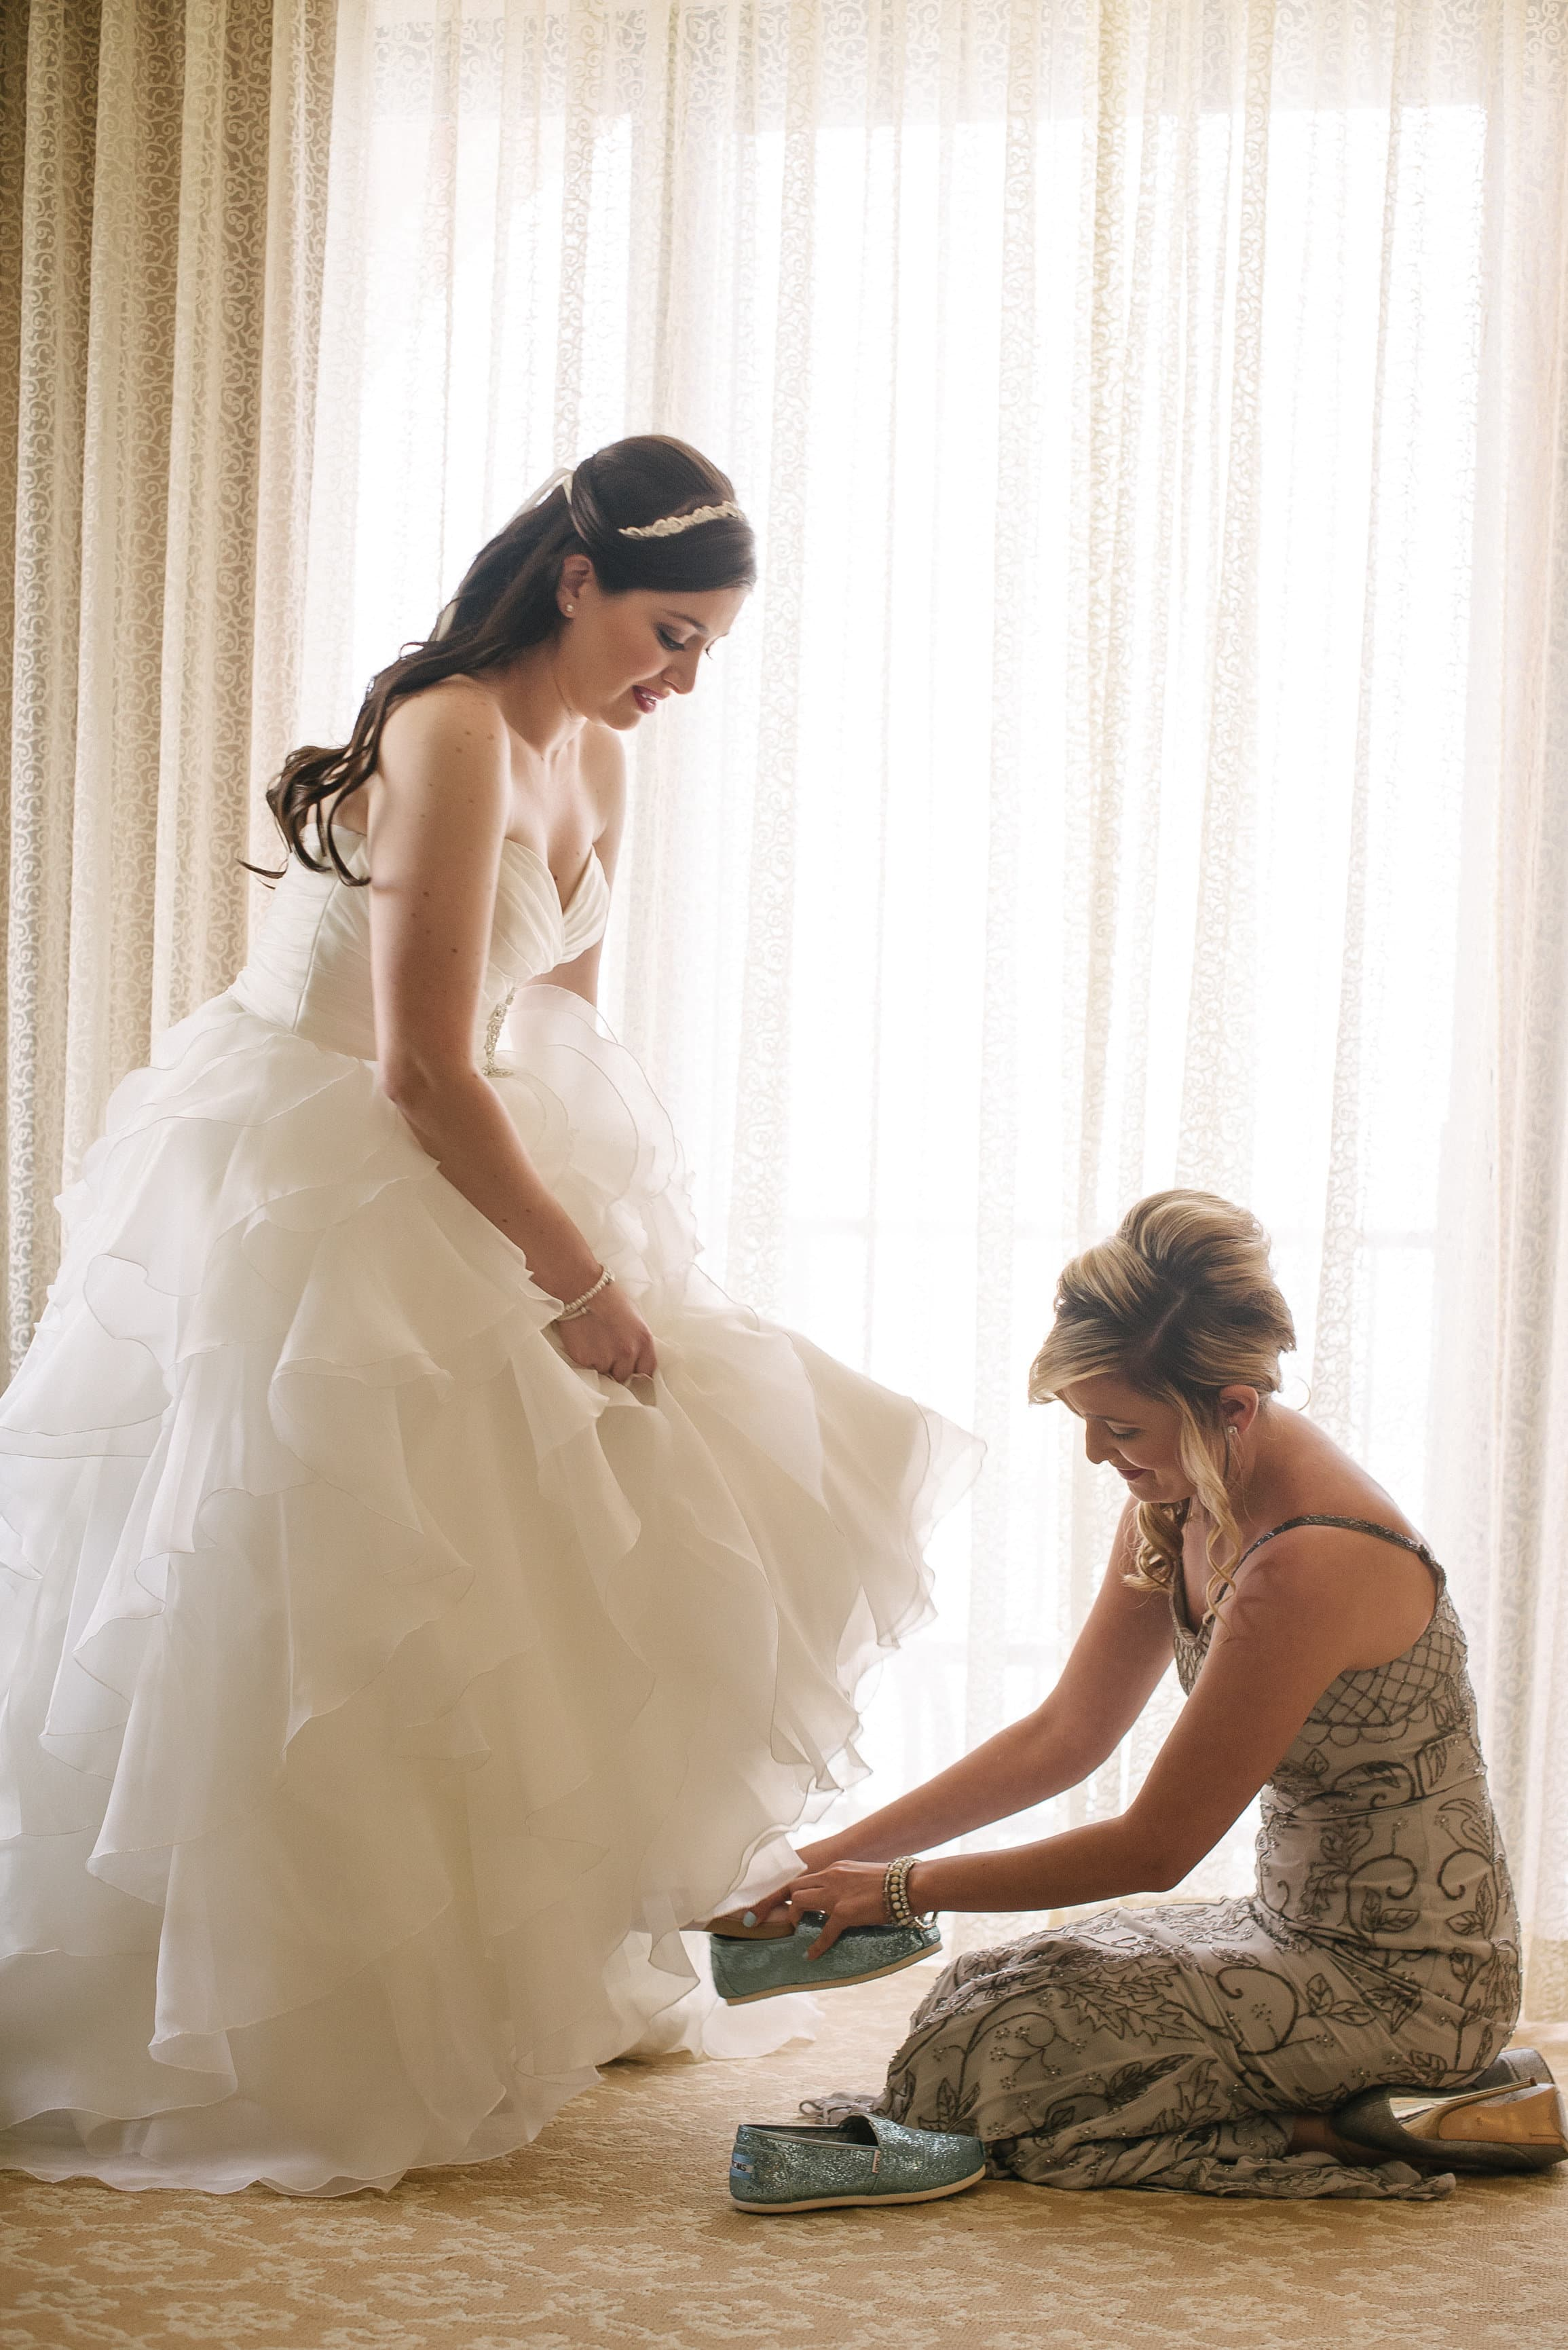 Budget first, Pinterest second: An expert's best tips on hosting a wedding without going broke